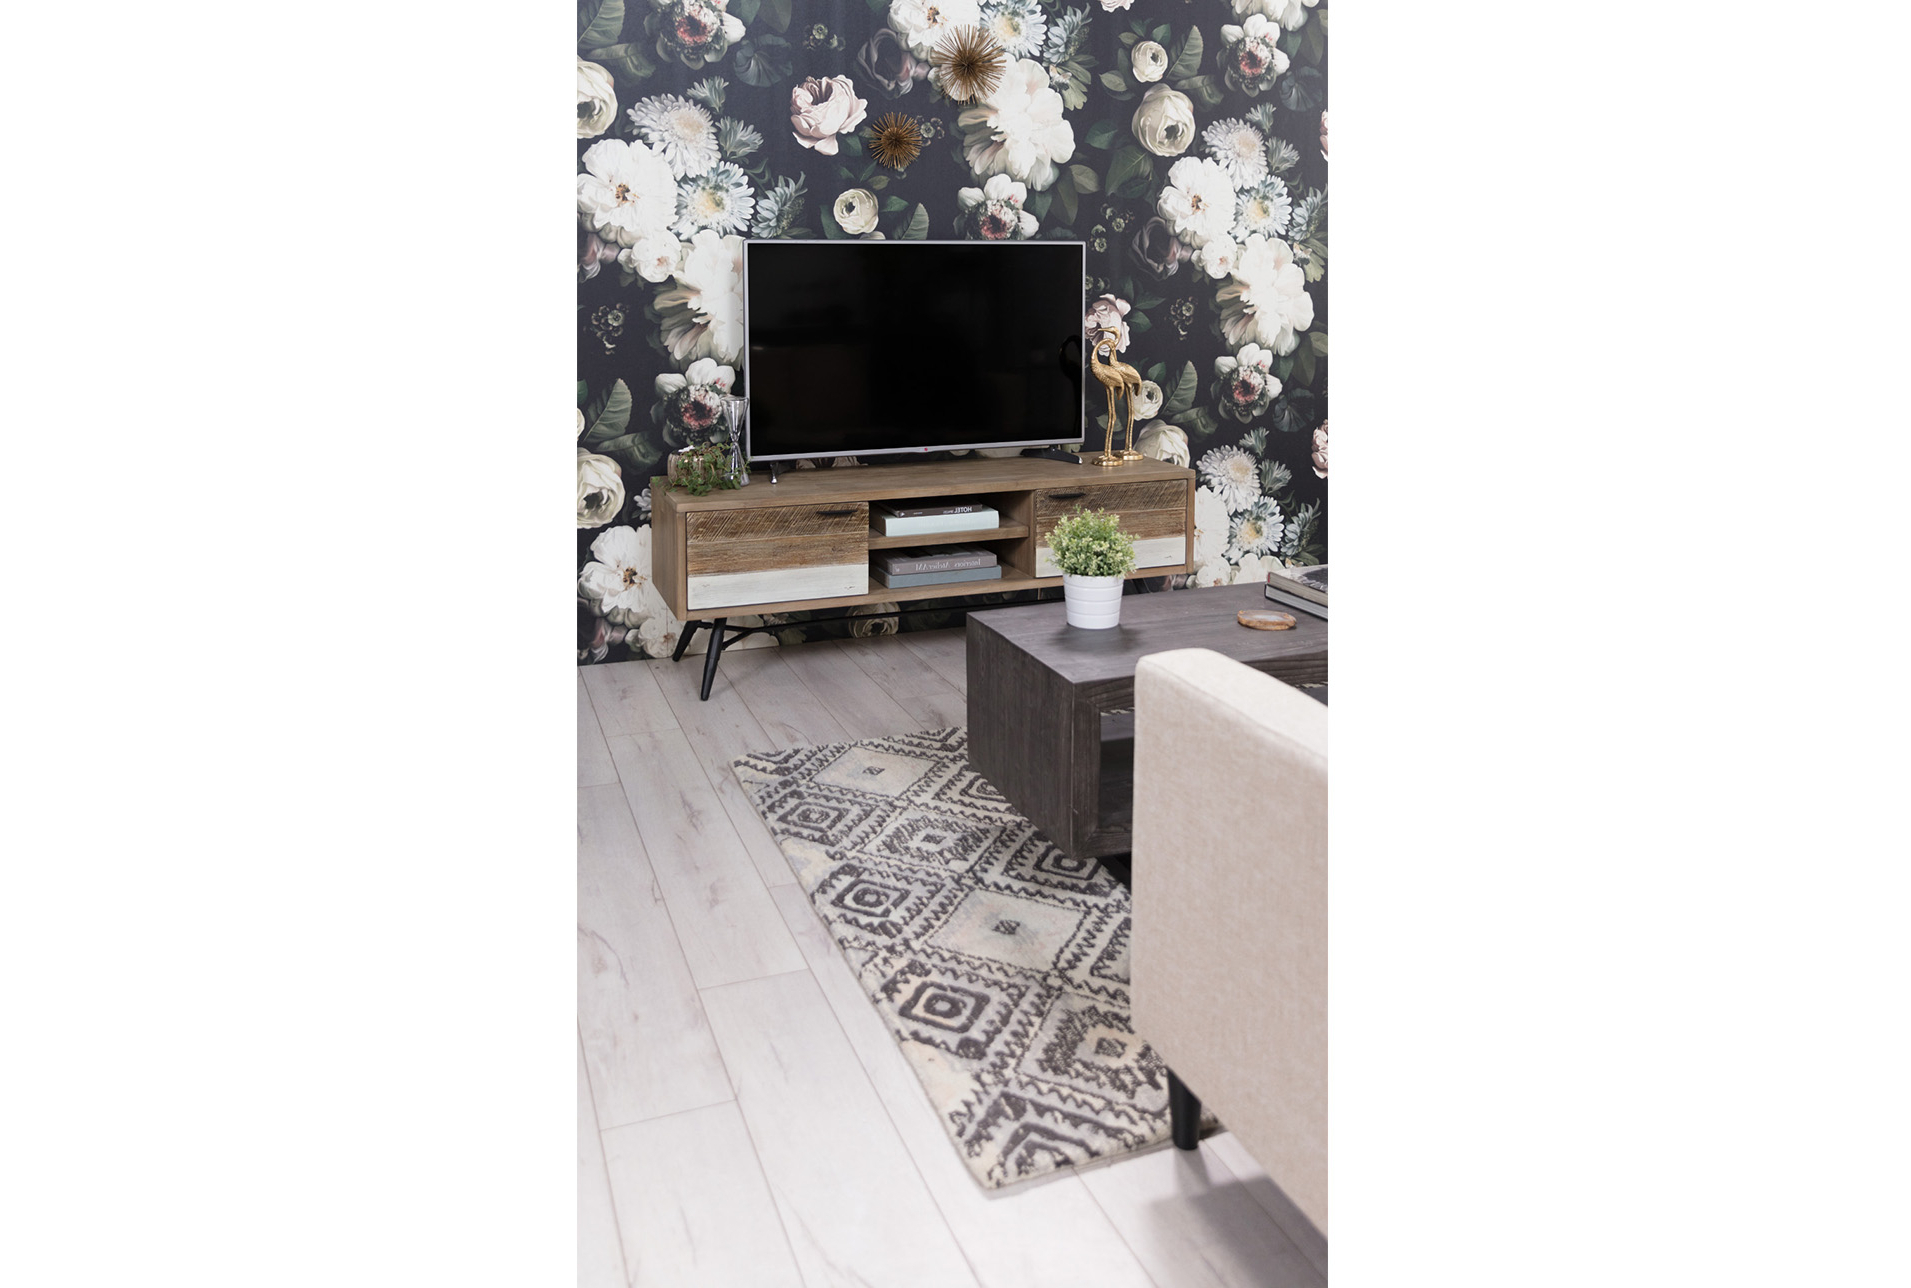 Kai 63 Inch Tv Stand | Products | Pinterest | Kai For Kai 63 Inch Tv Stands (View 3 of 20)